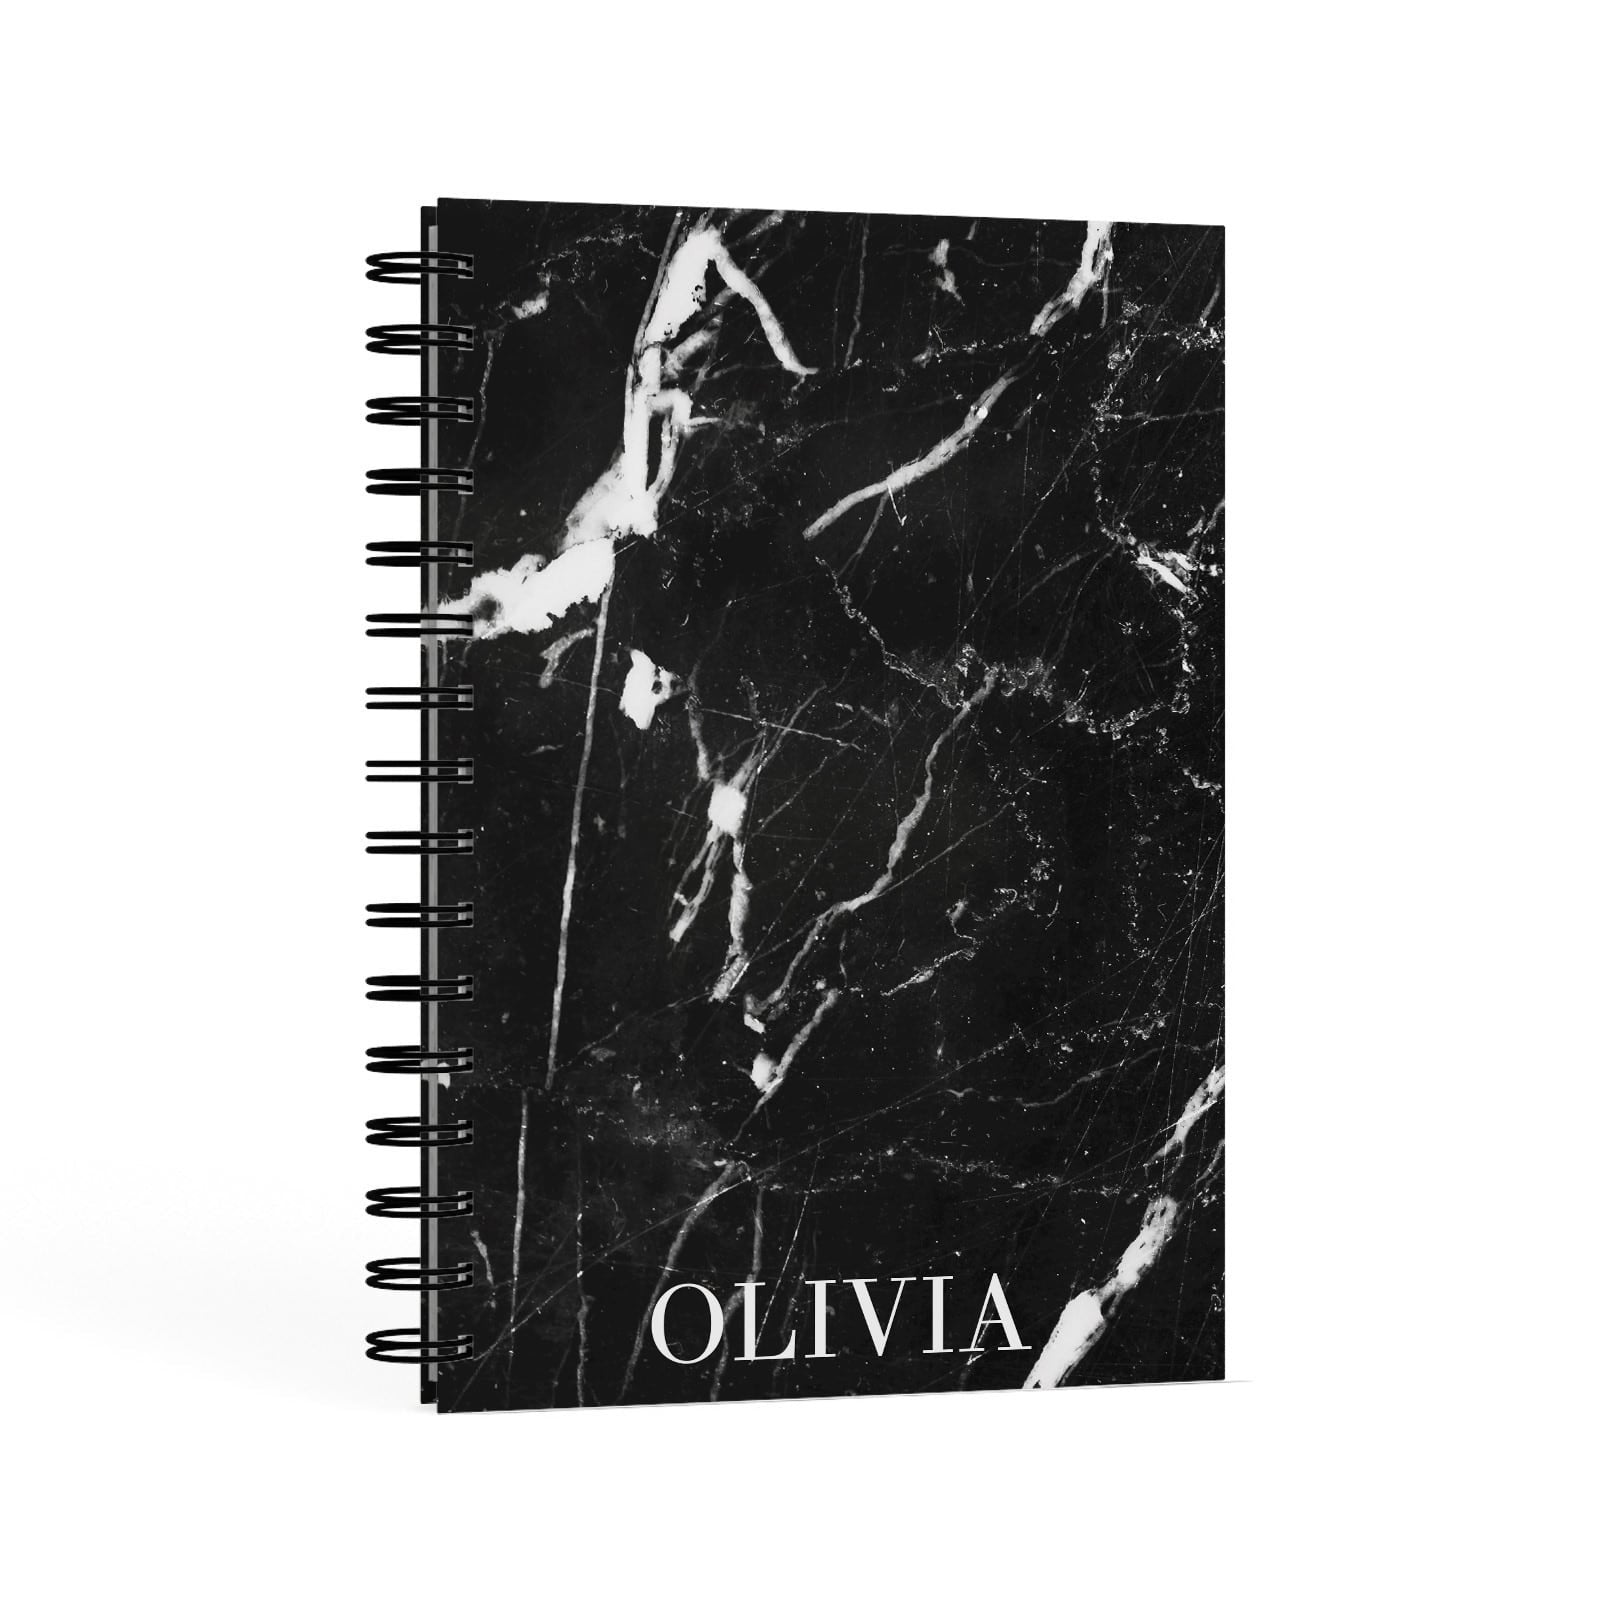 Marble Name Personalised A5 Hardcover Notebook Second Side View